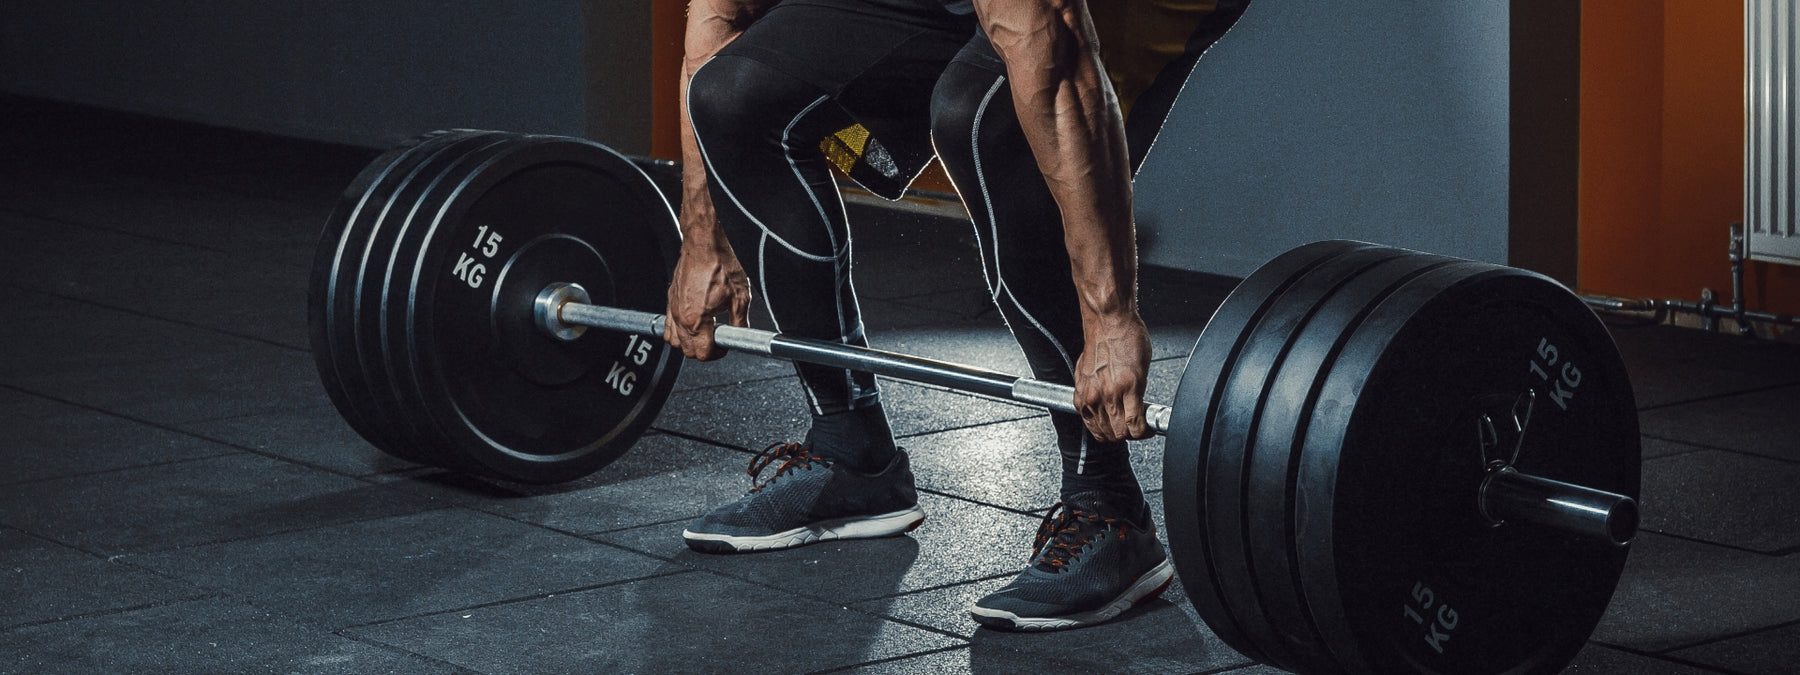 Smash a New Deadlift PR With These 4 Exercises